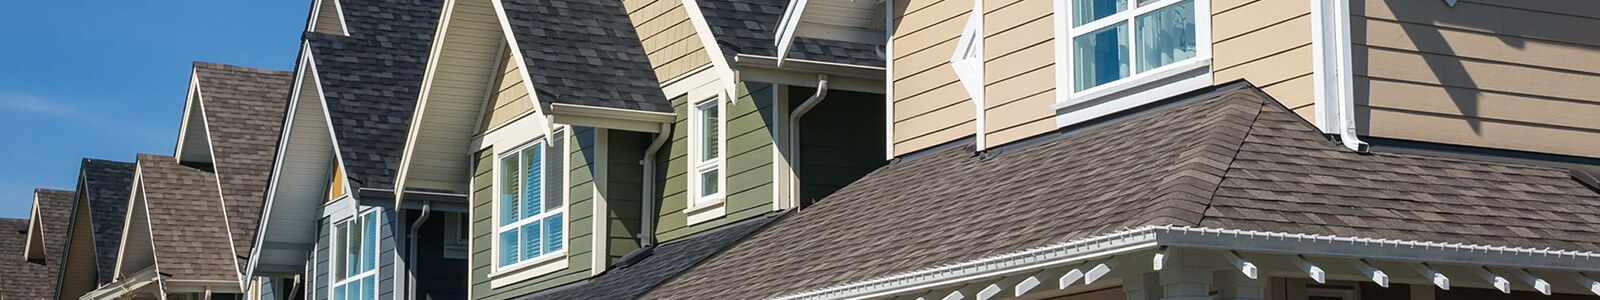 residential roofing toronto